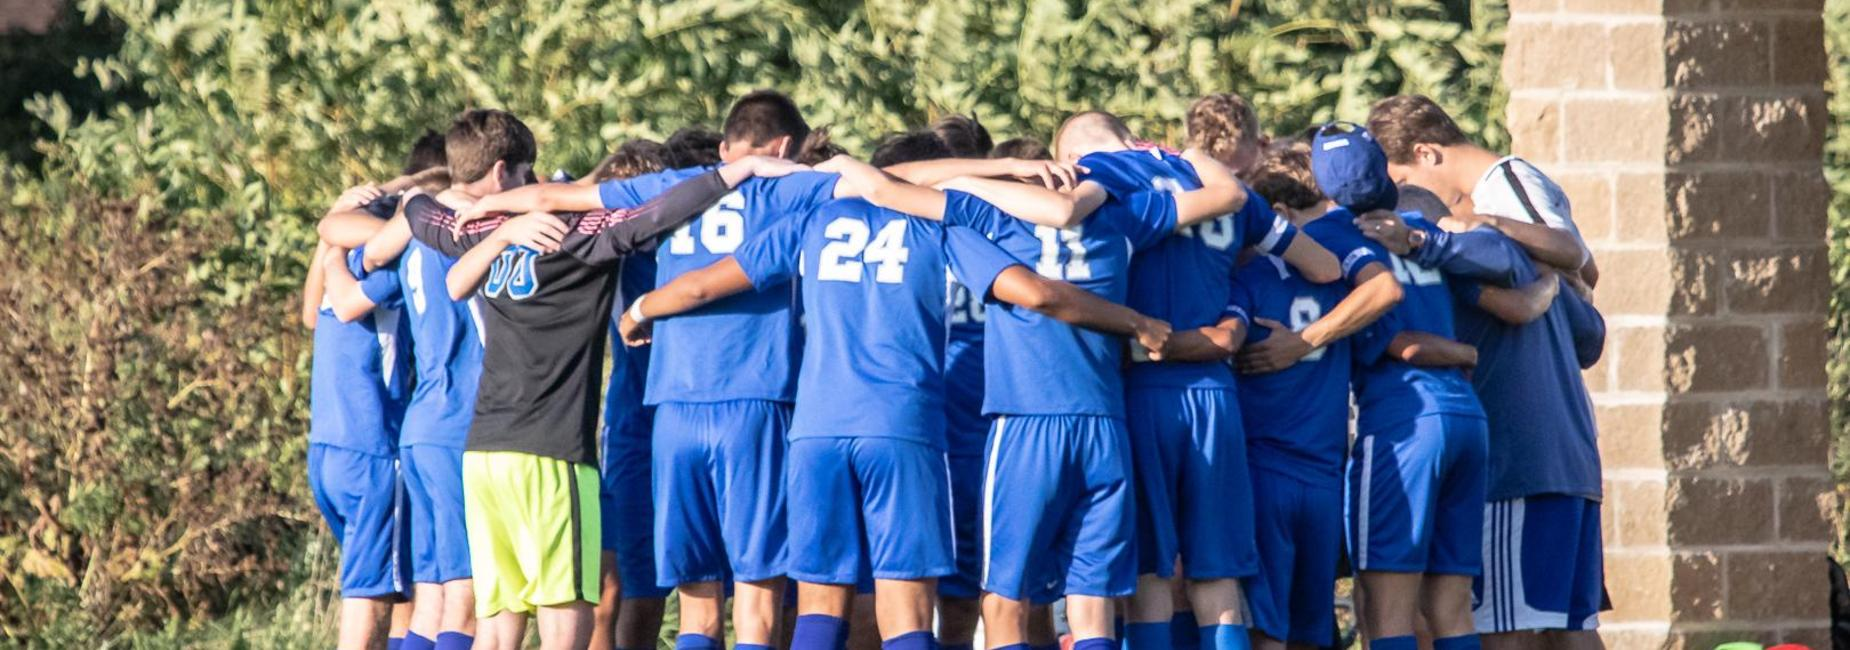 boys soccer prayer